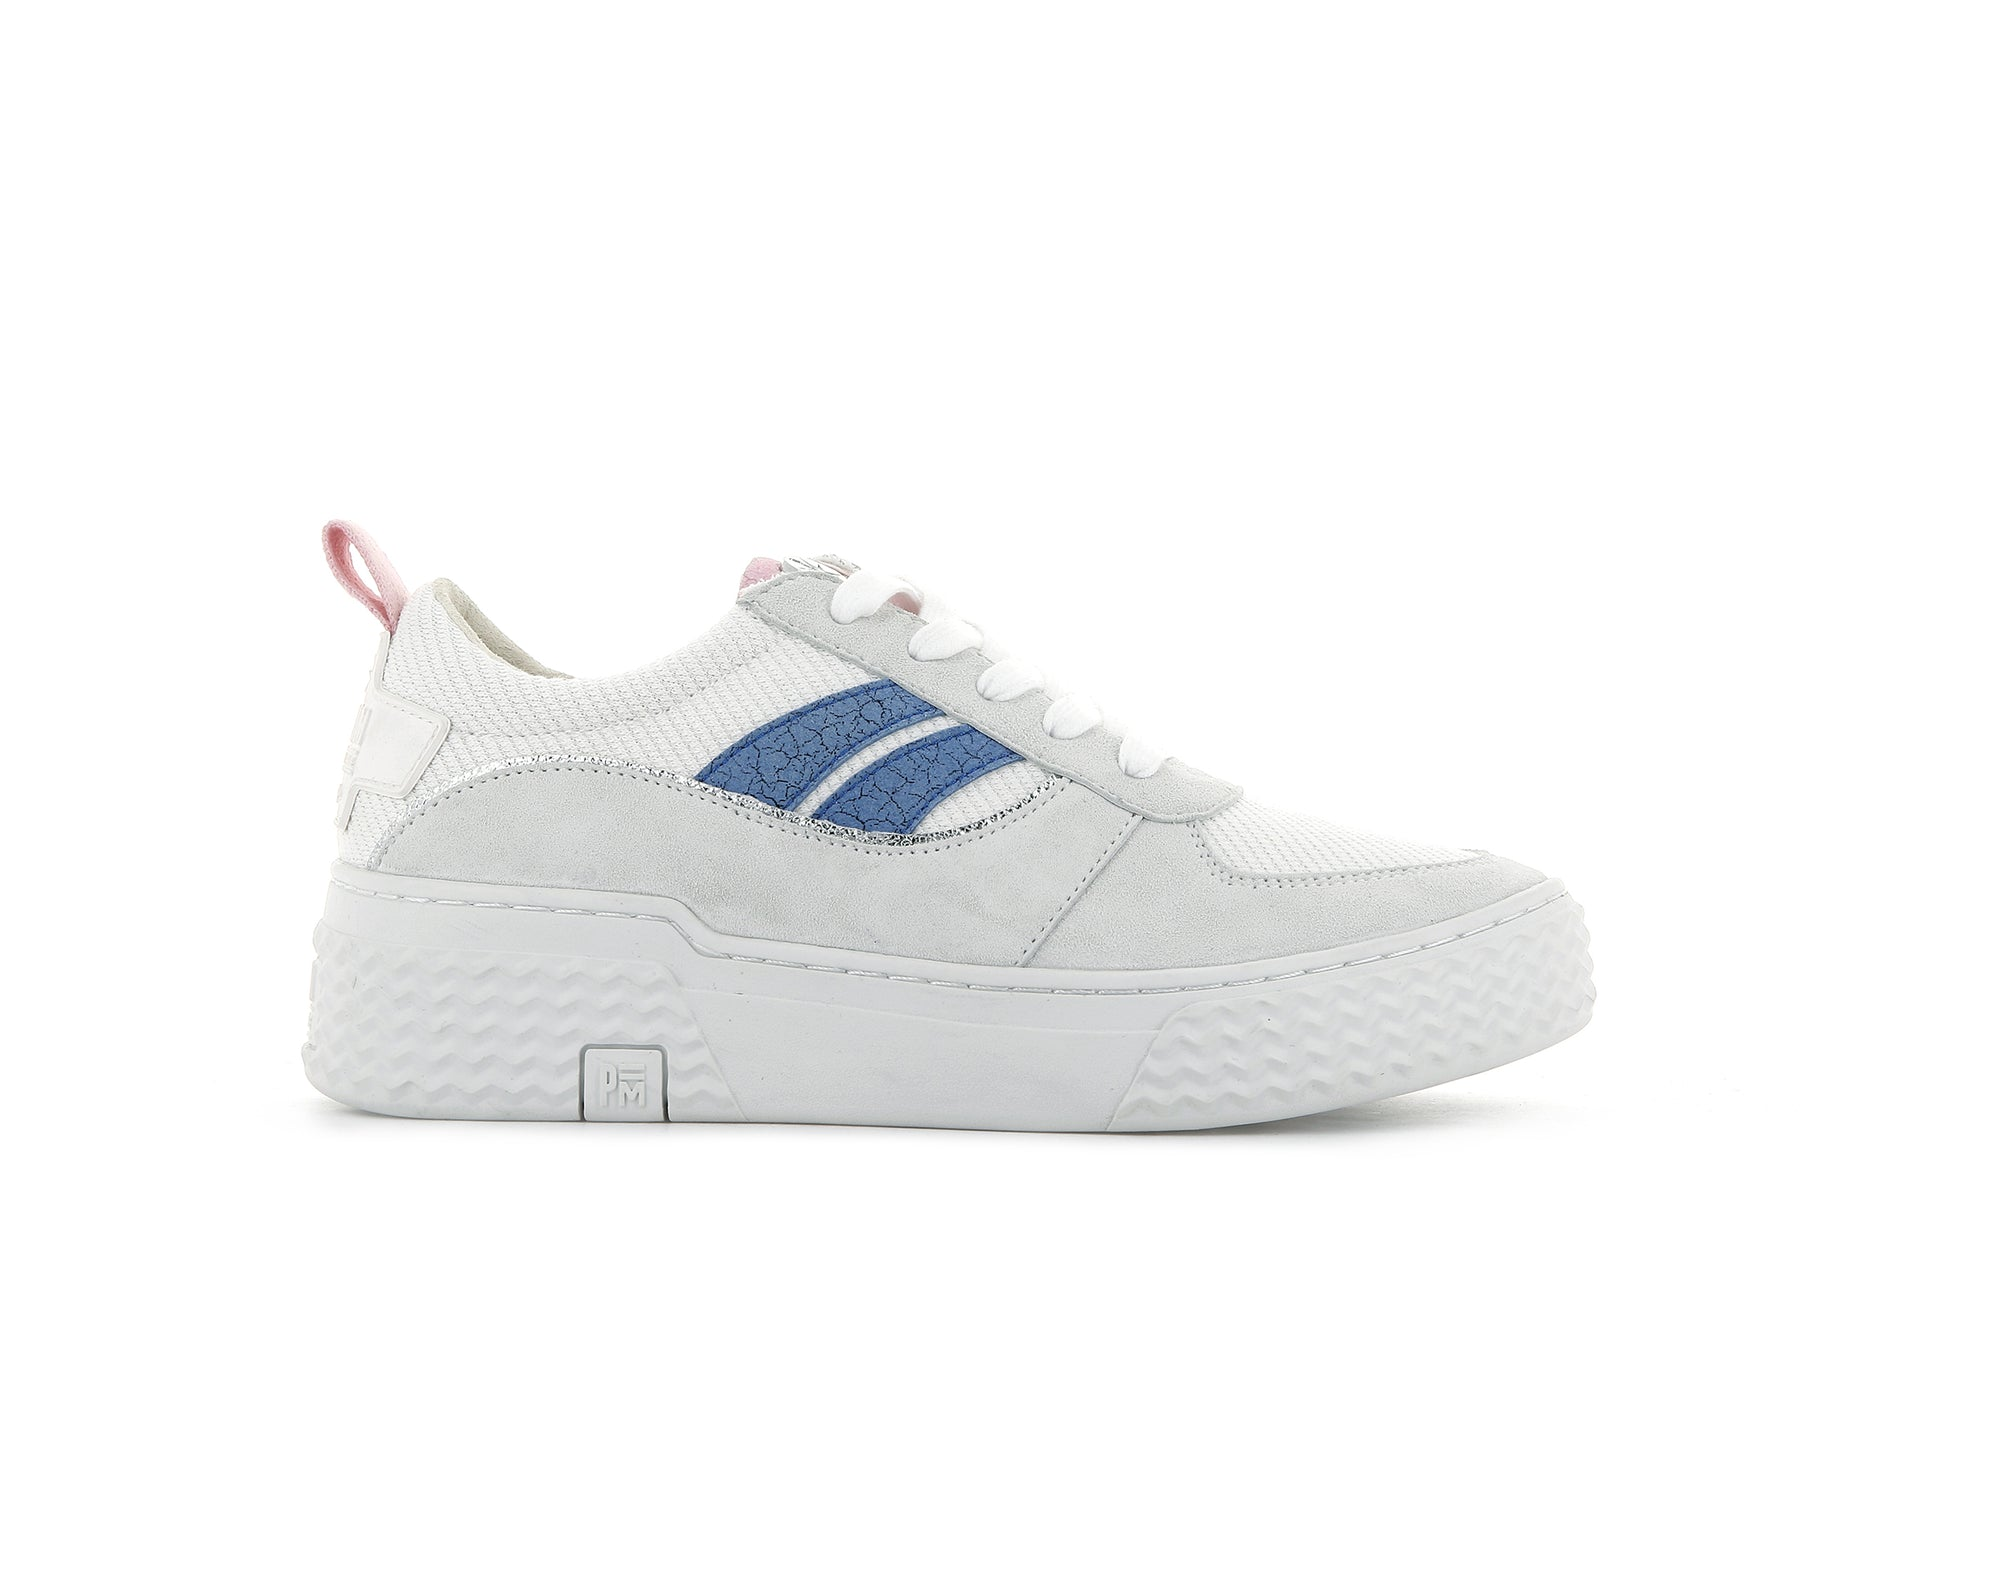 76991_V62 | Baskets femme EGO 01 SOAP | WHITE/PINK/BLUE